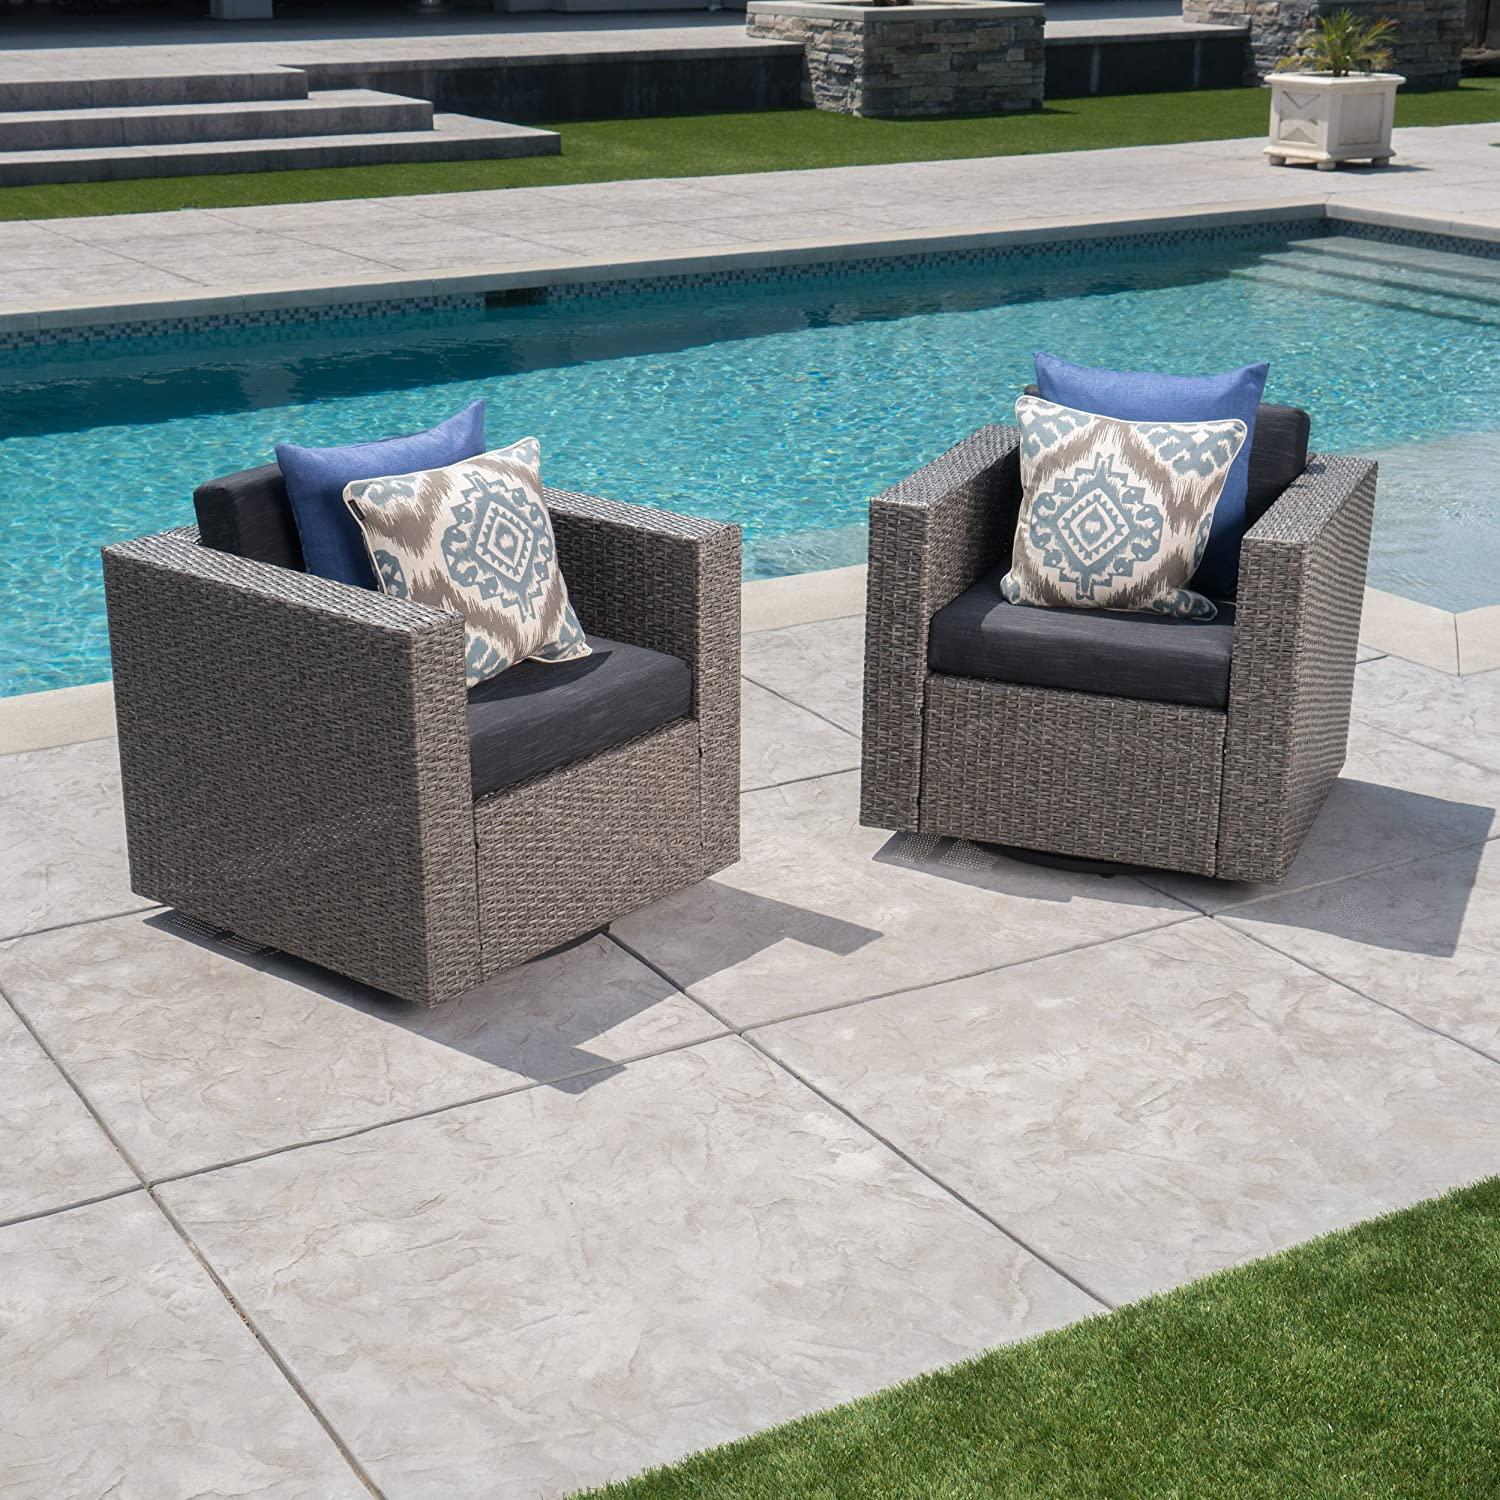 Christopher Knight Home Venice Outdoor Brown Wicker Swivel Club Chair with Beige Water Resistant Cushions Set of 2, Mix Black Dark Grey